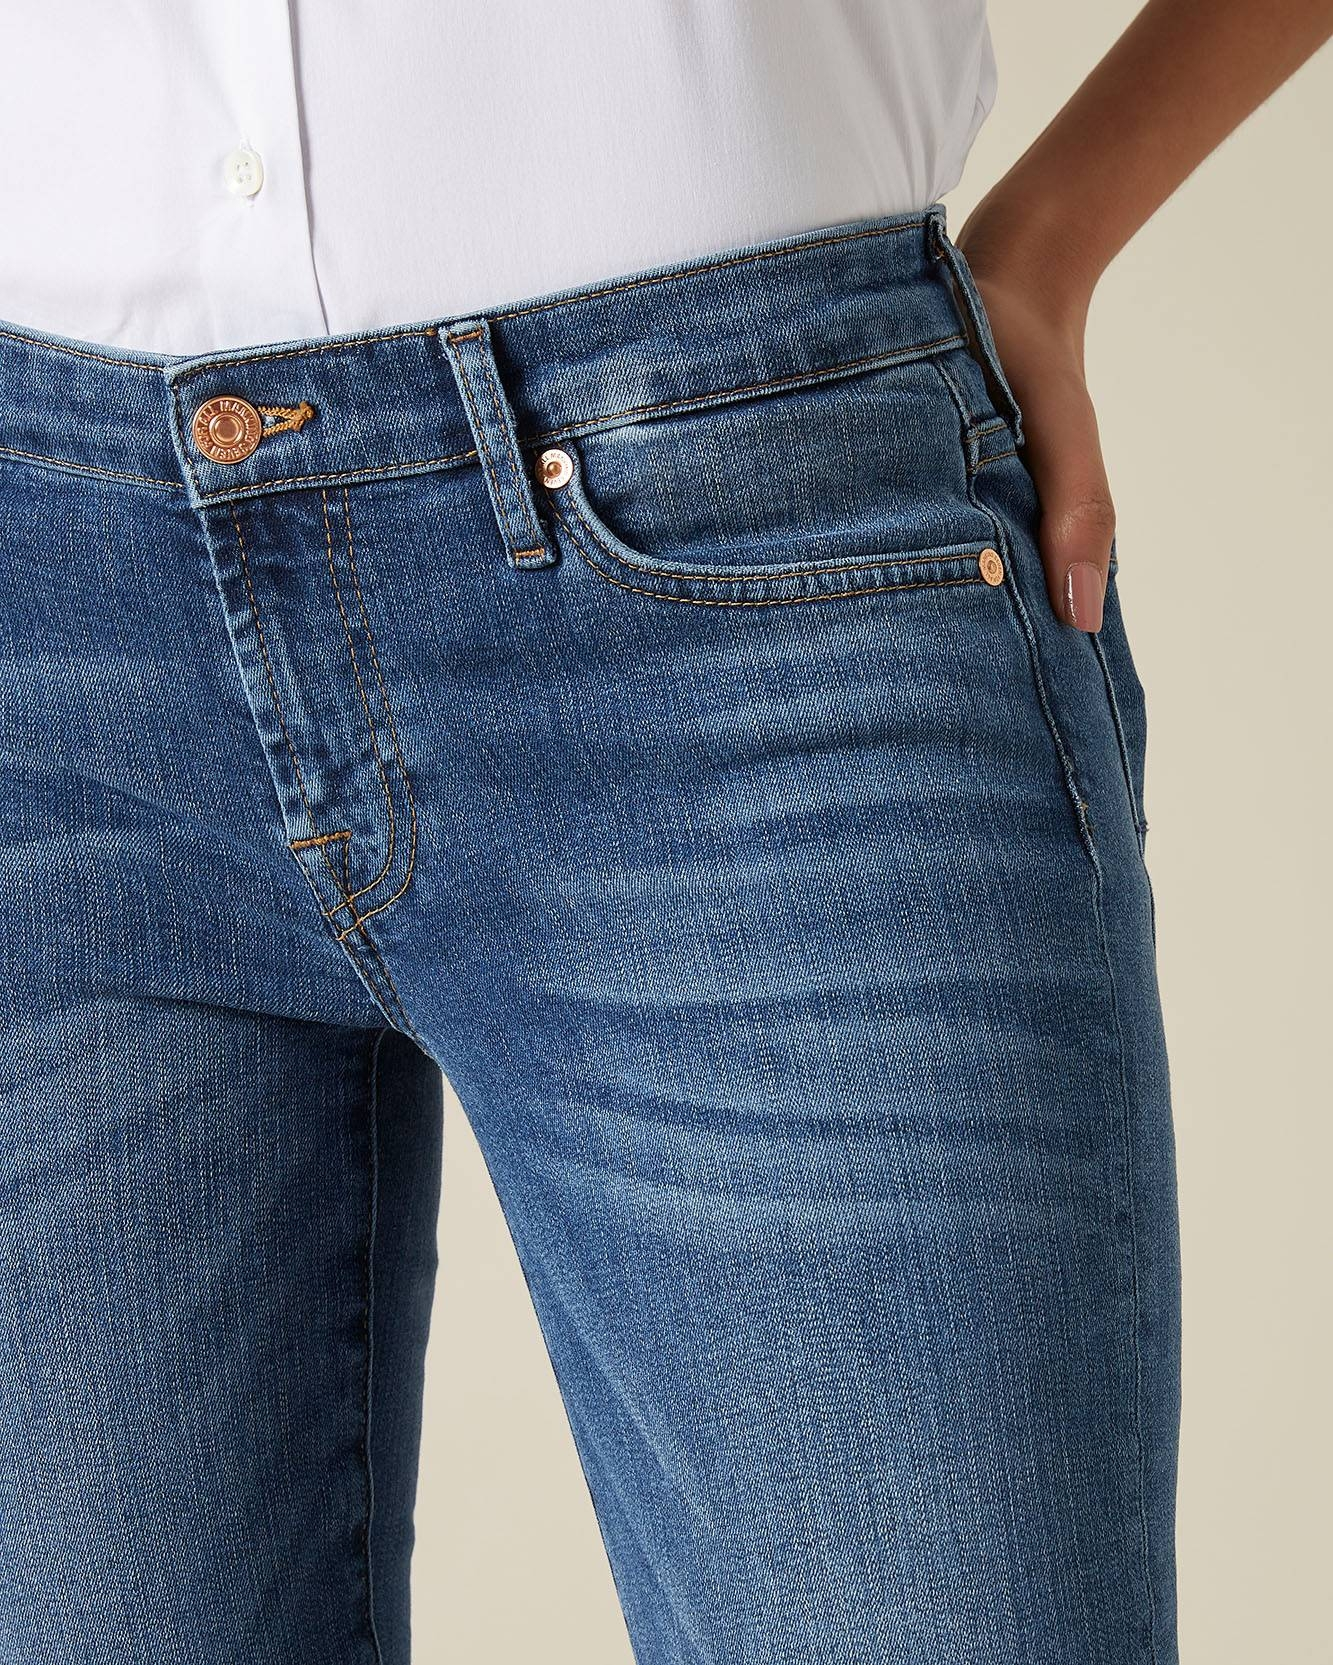 Sustainability - 7 For all Mankind - Jeans, Denim Jackets & Clothing, denim jeans, denim jeans men, denim jeans mens, denim jeans for men, mens denim jeans, men denim jeans, men's denim jeans, ripped denim jeans, denim jeans woman, denim jeans women, denim jeans for women, women's denim jeans, womens denim jeans, denim jeans womens, jeans, high waist jeans, jeans high waist,